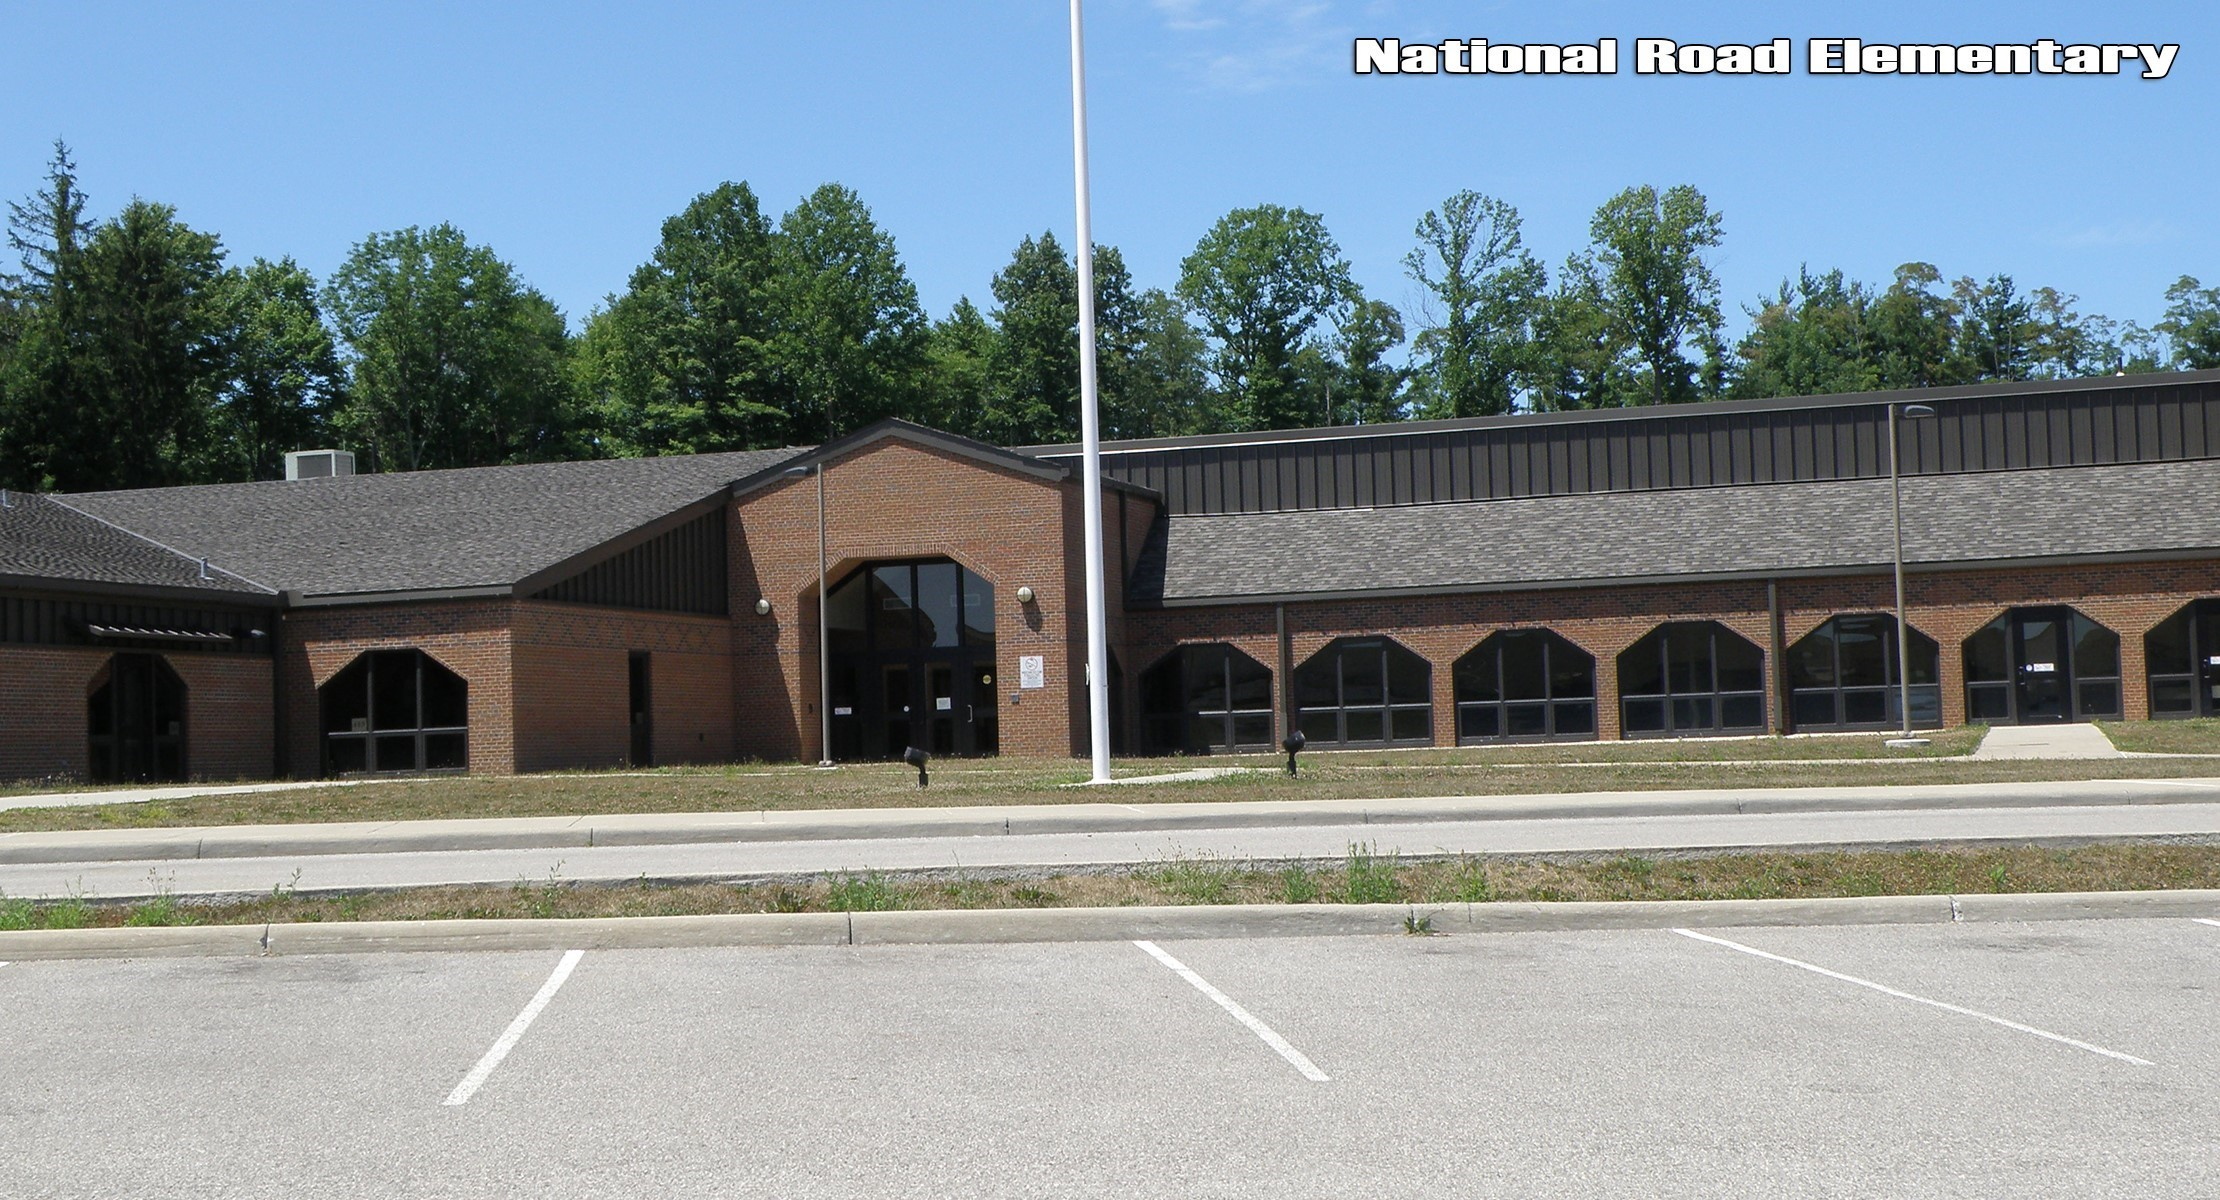 National Road Elementary building